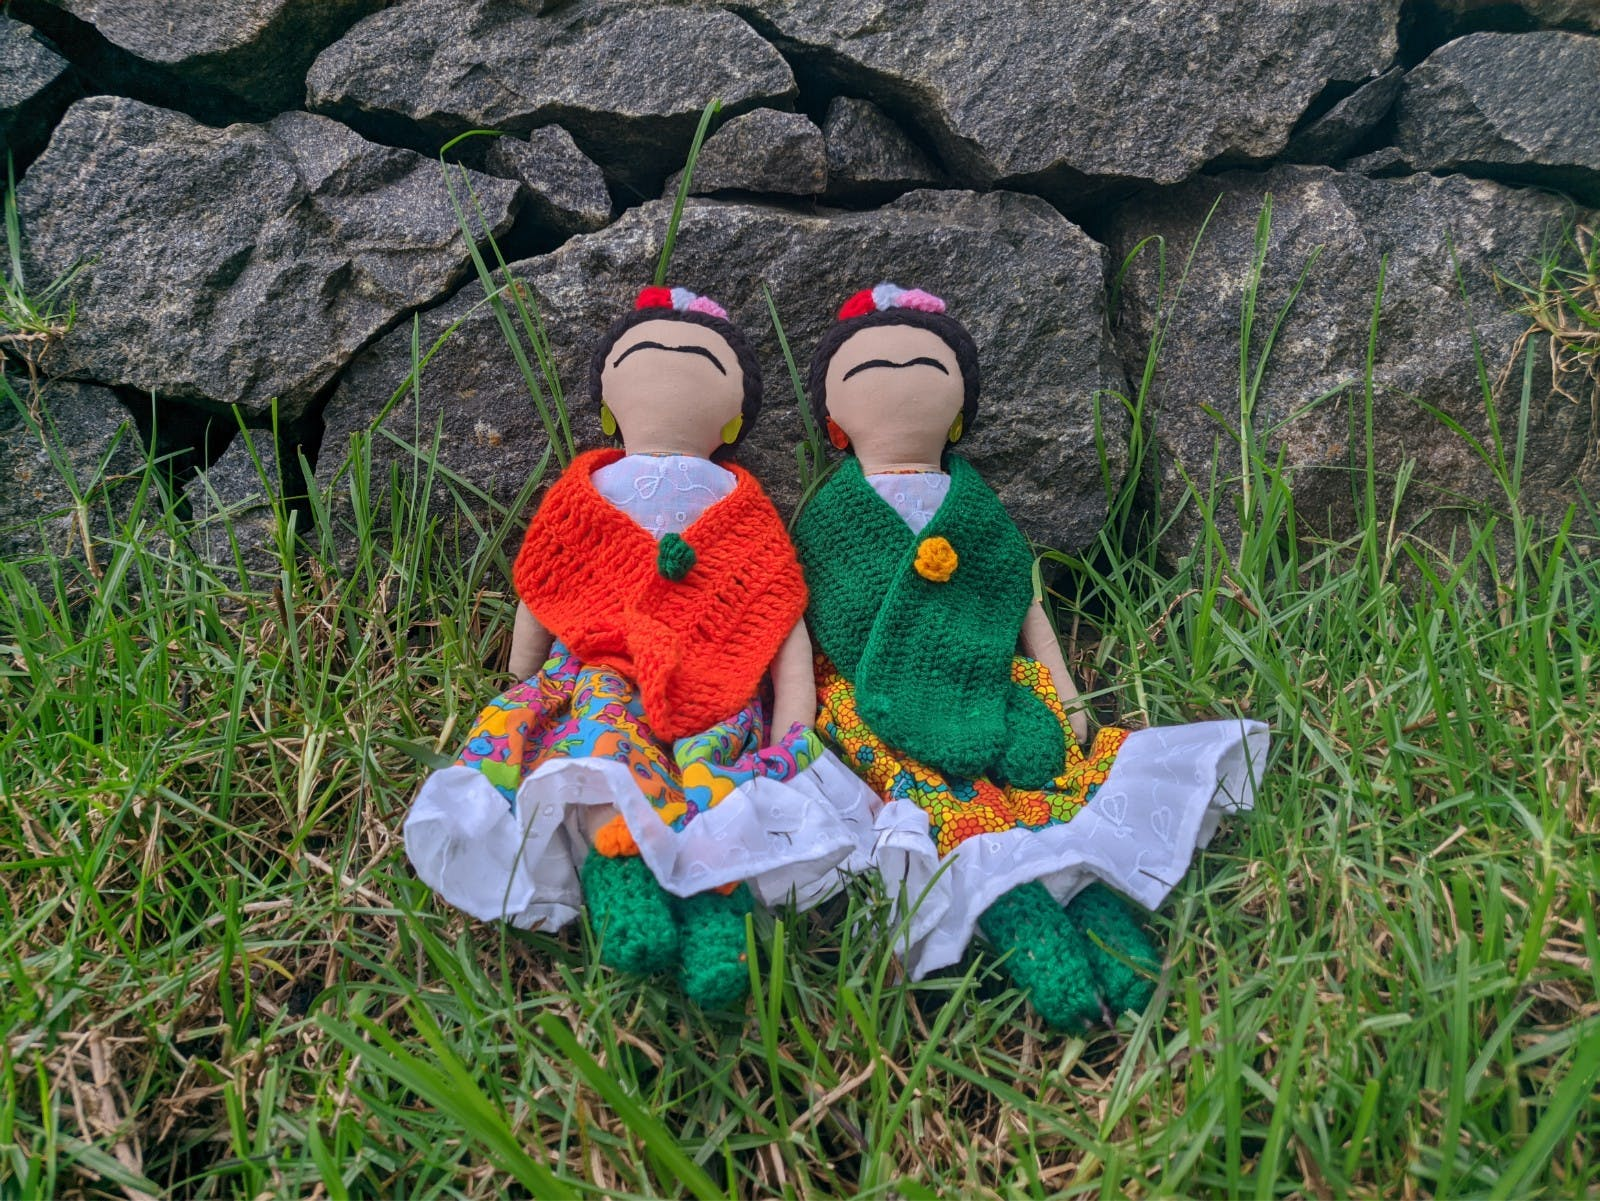 Head,Doll,Toy,People in nature,Grass,Plant,Groundcover,Lawn ornament,Grass family,Grassland